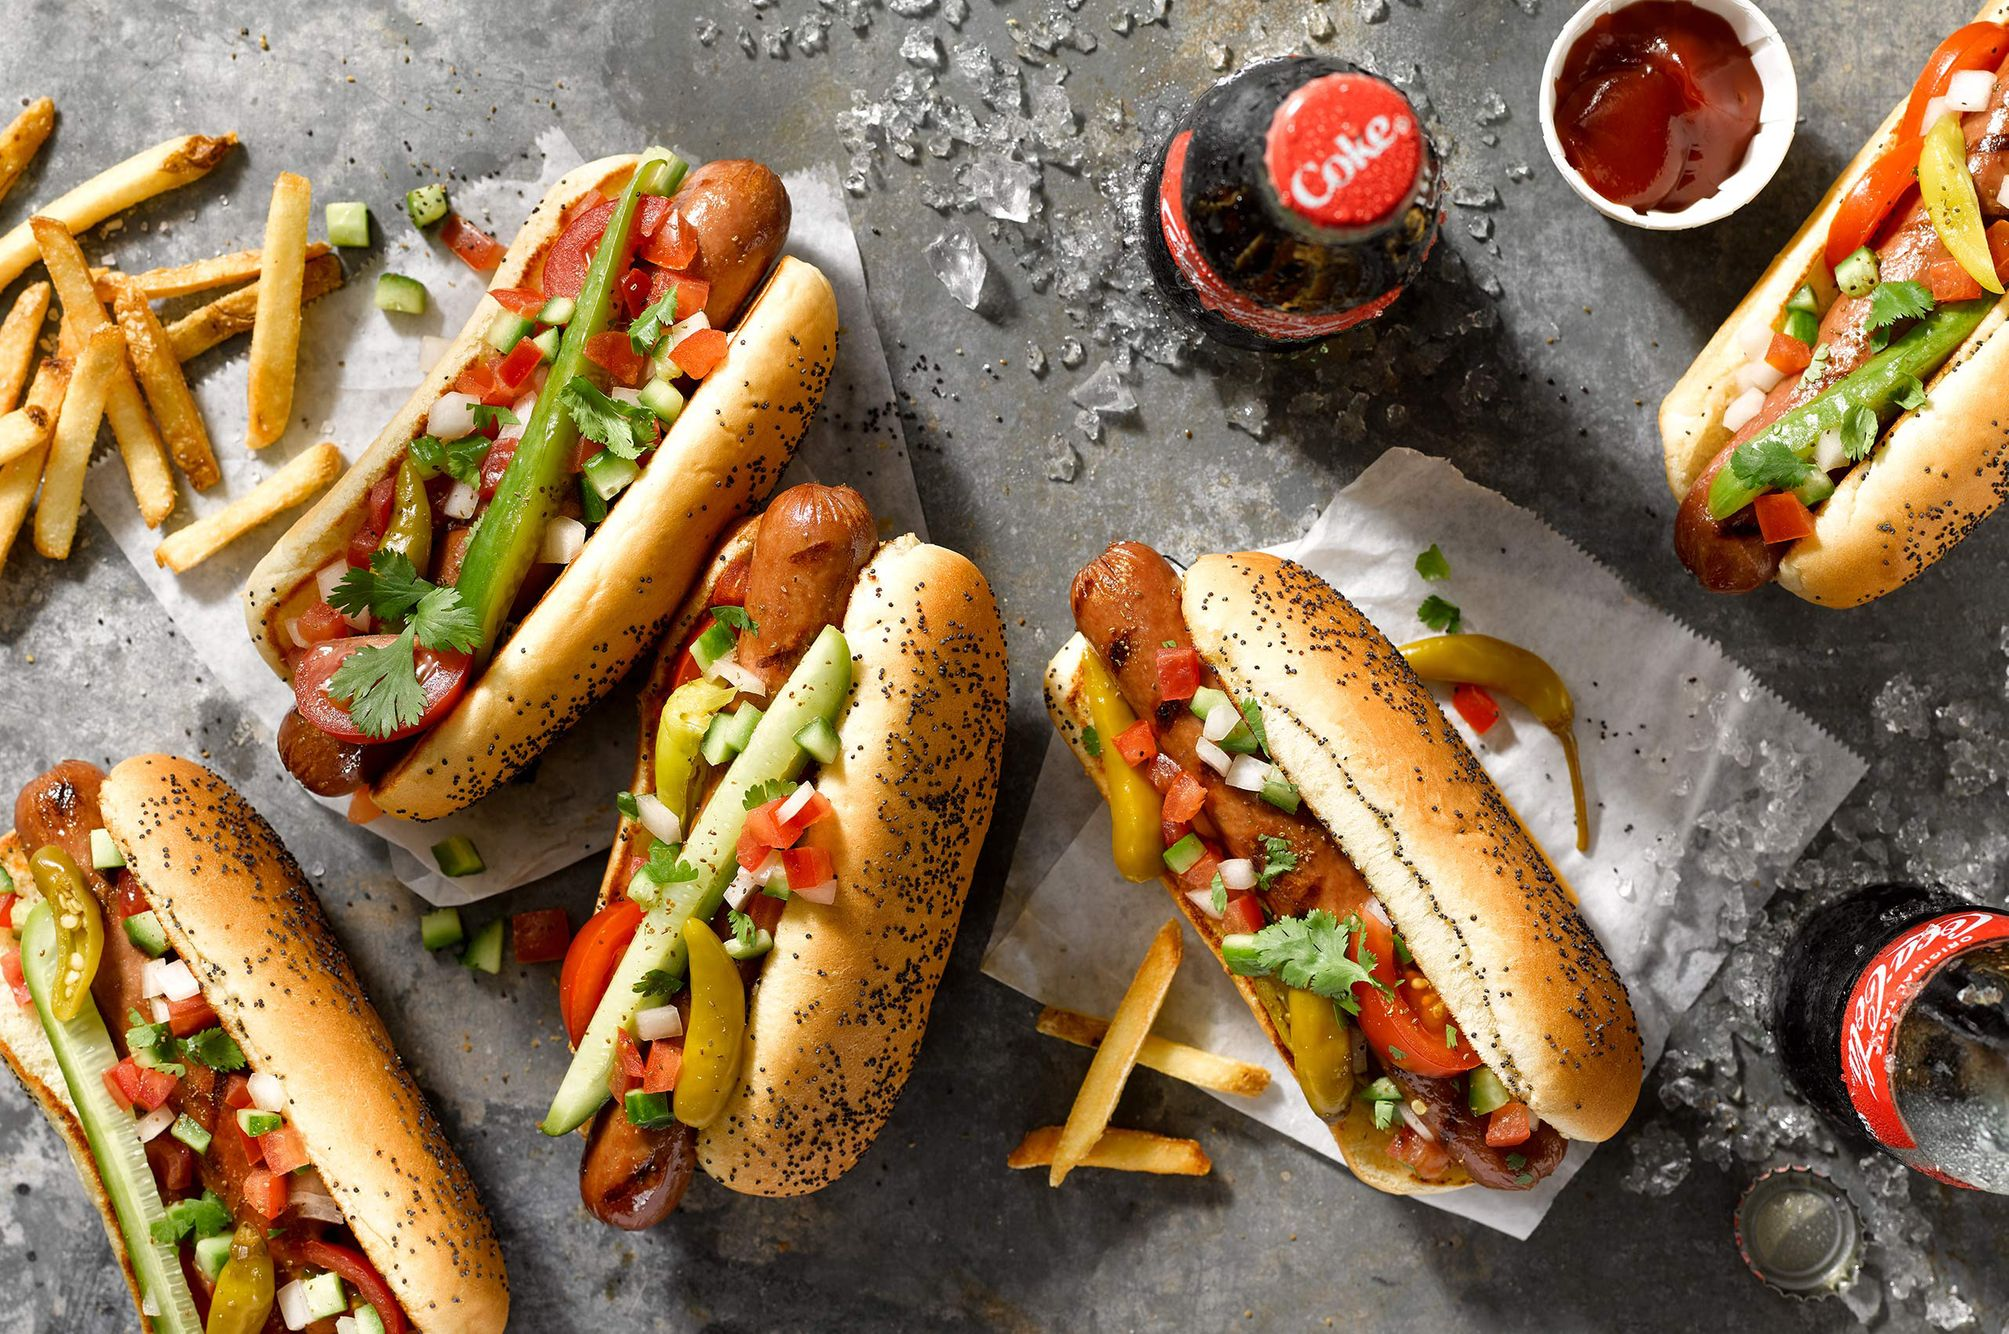 Chicago Style Vienna Hot Dogs